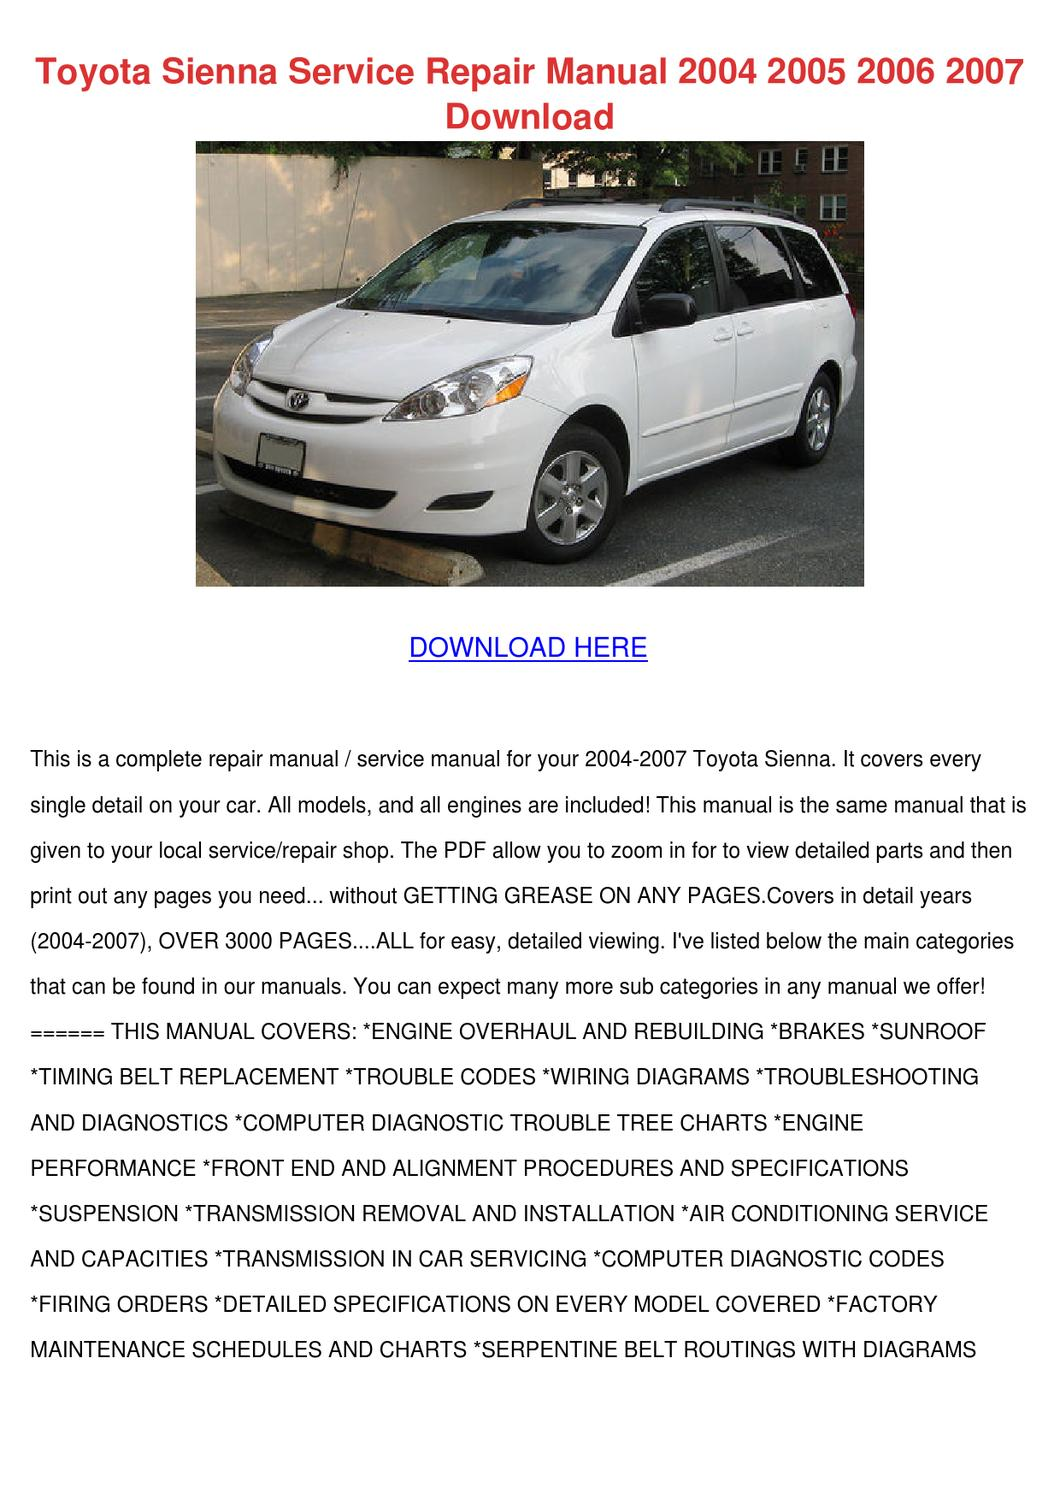 Toyota Sienna Service Repair Manual 2004 2005 By Enda Dito